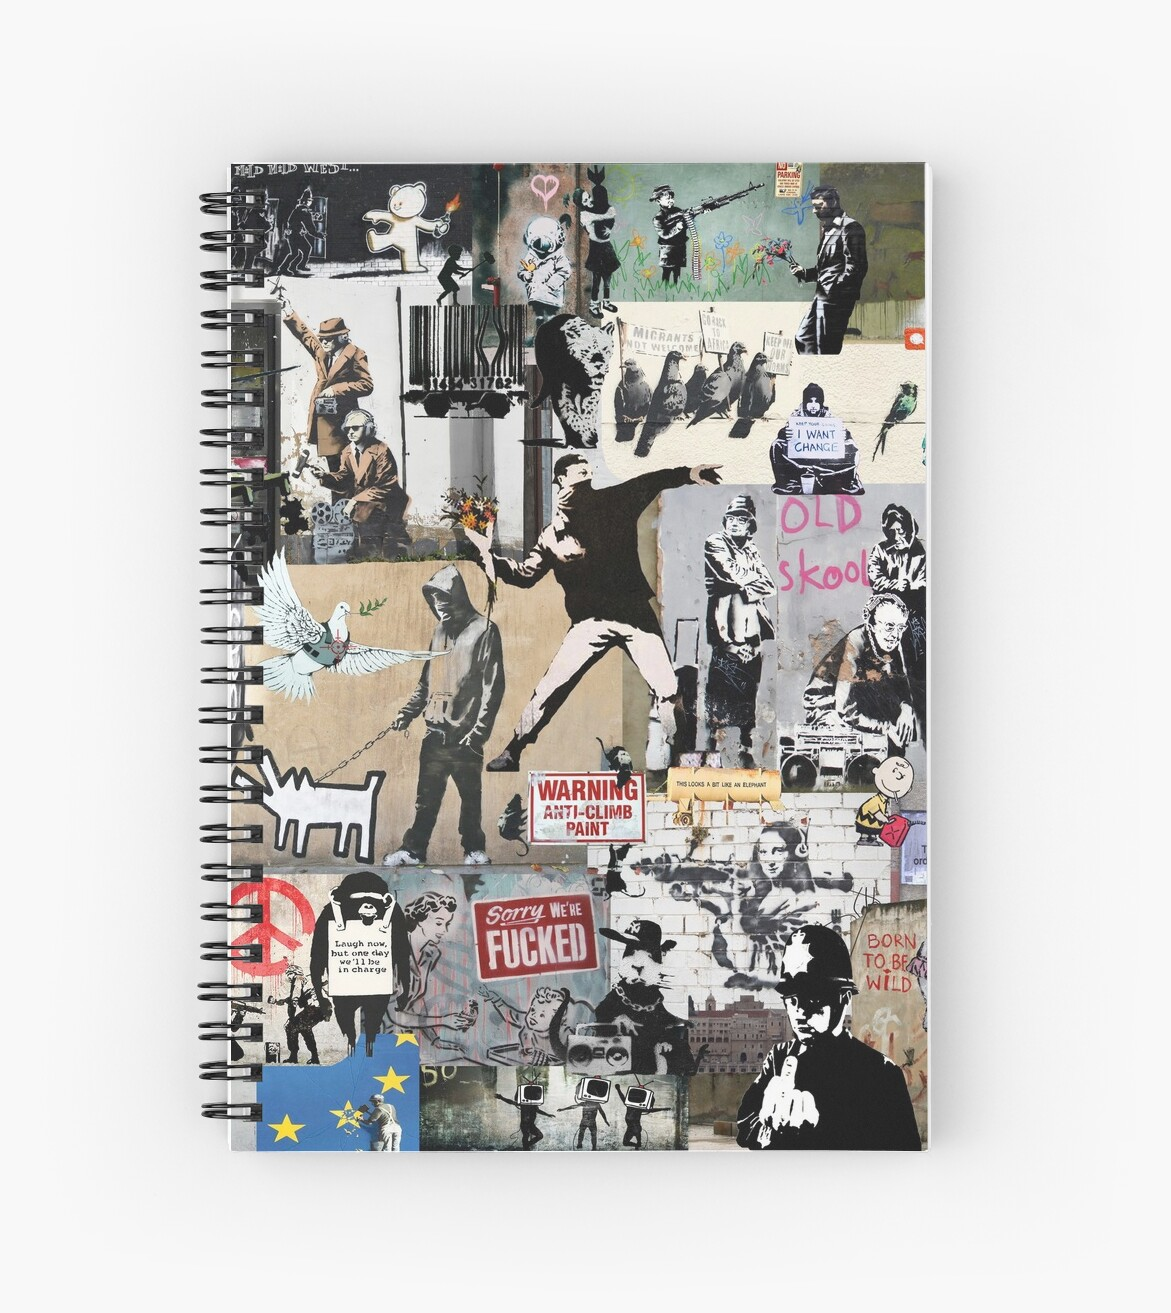 Banksy Collage Fine Art Poster Print in Canvas or Paper Card